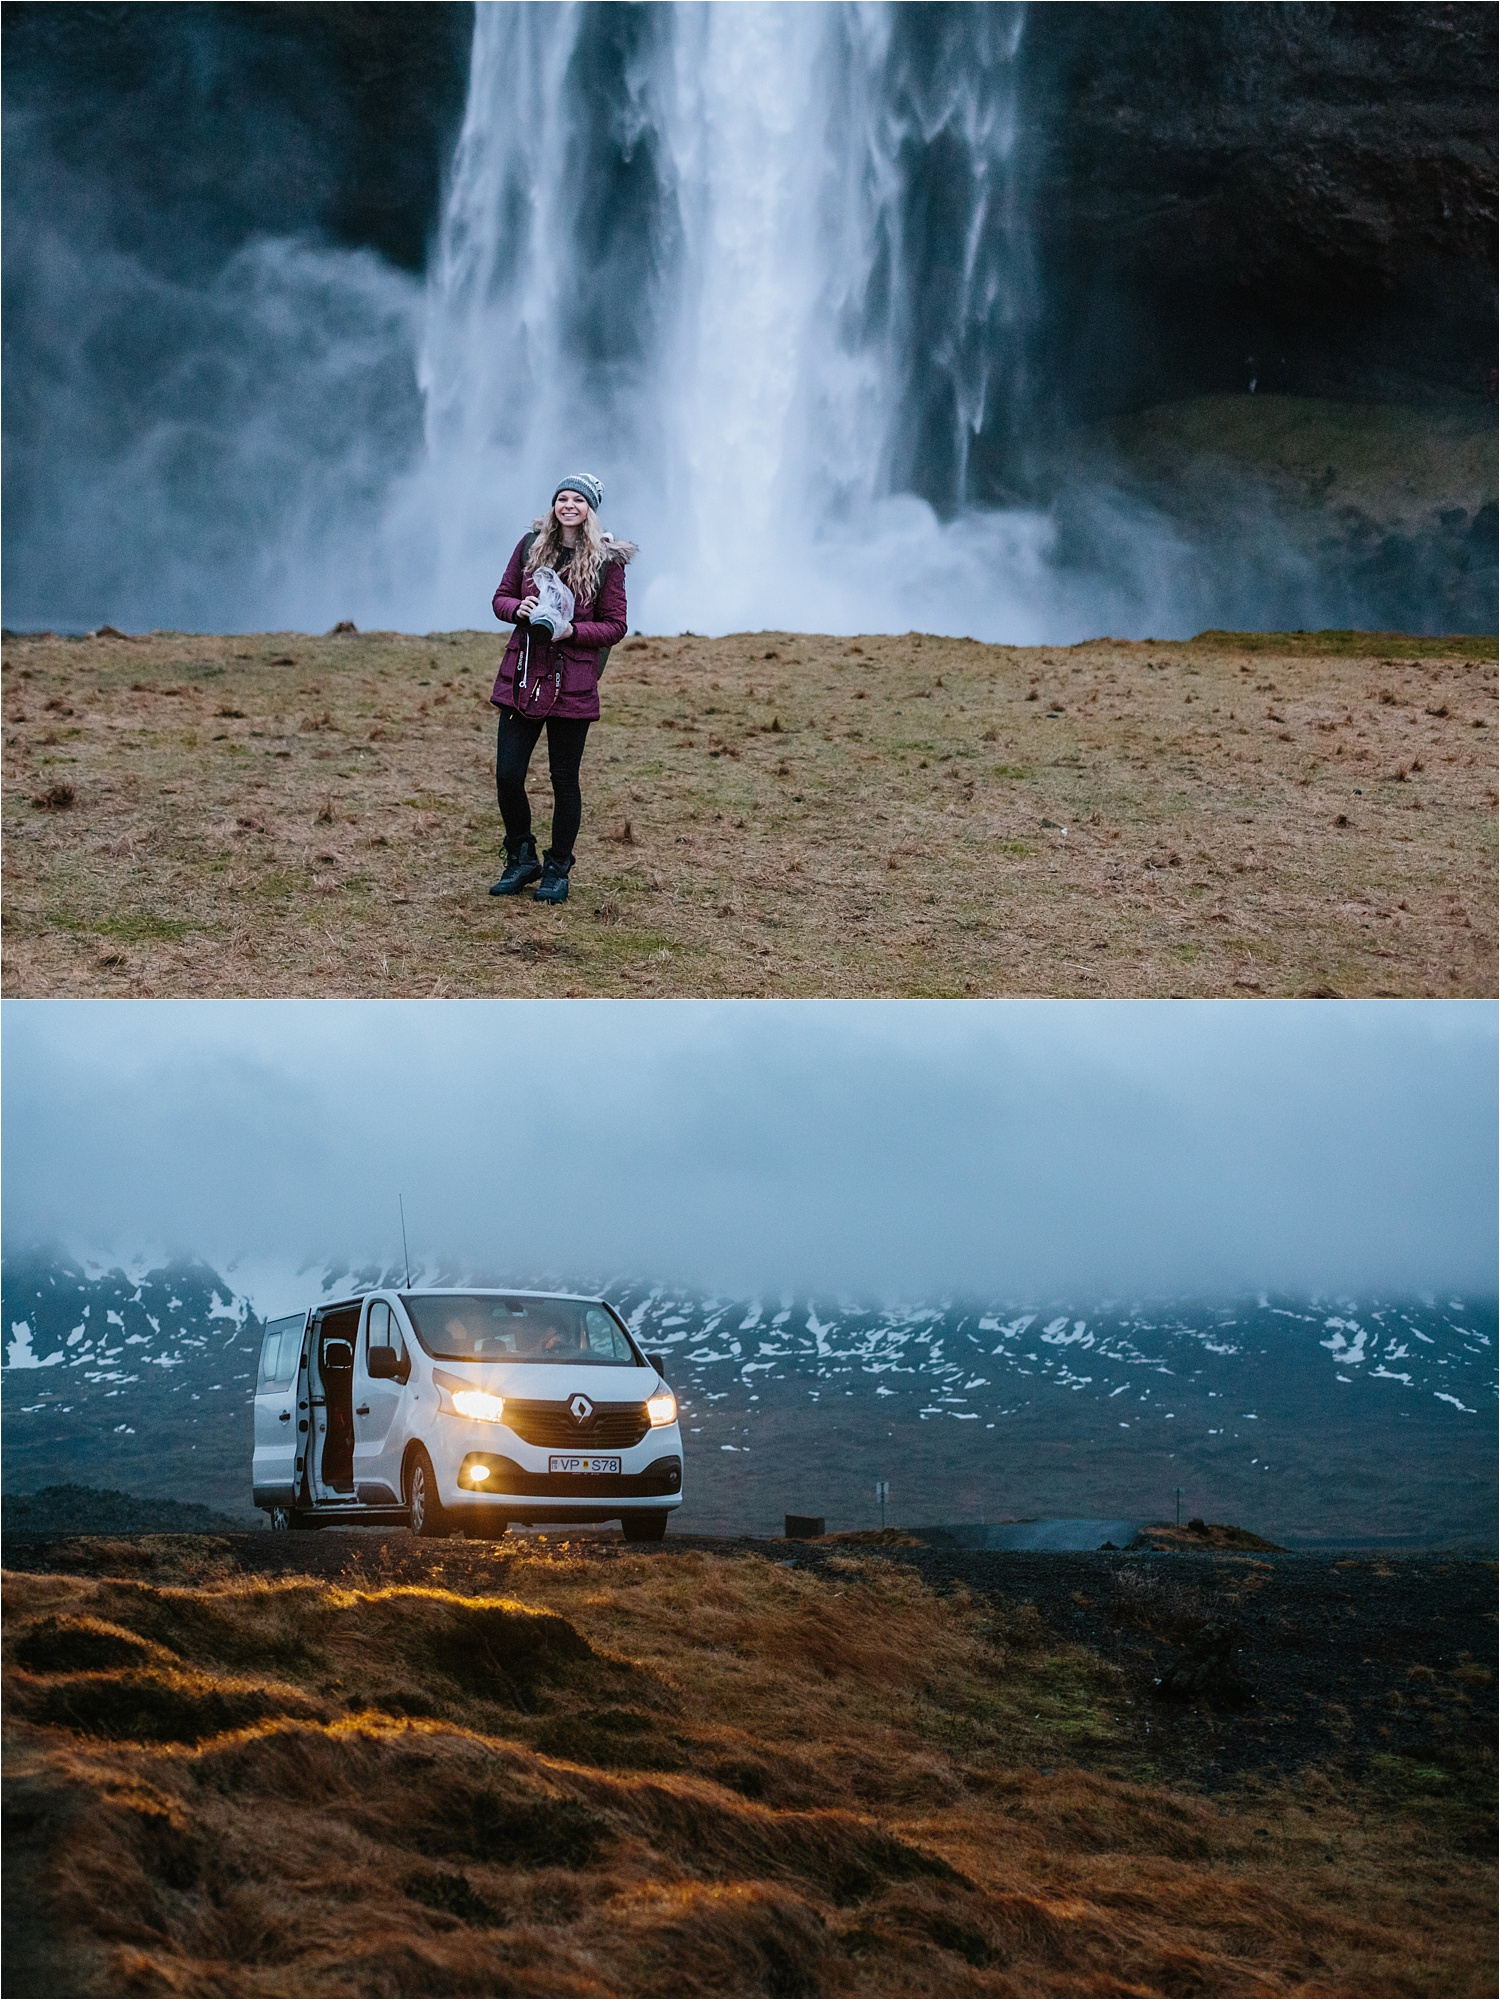 Me in front of Seljalandsfoss and our van in the middle of nowhere. :)